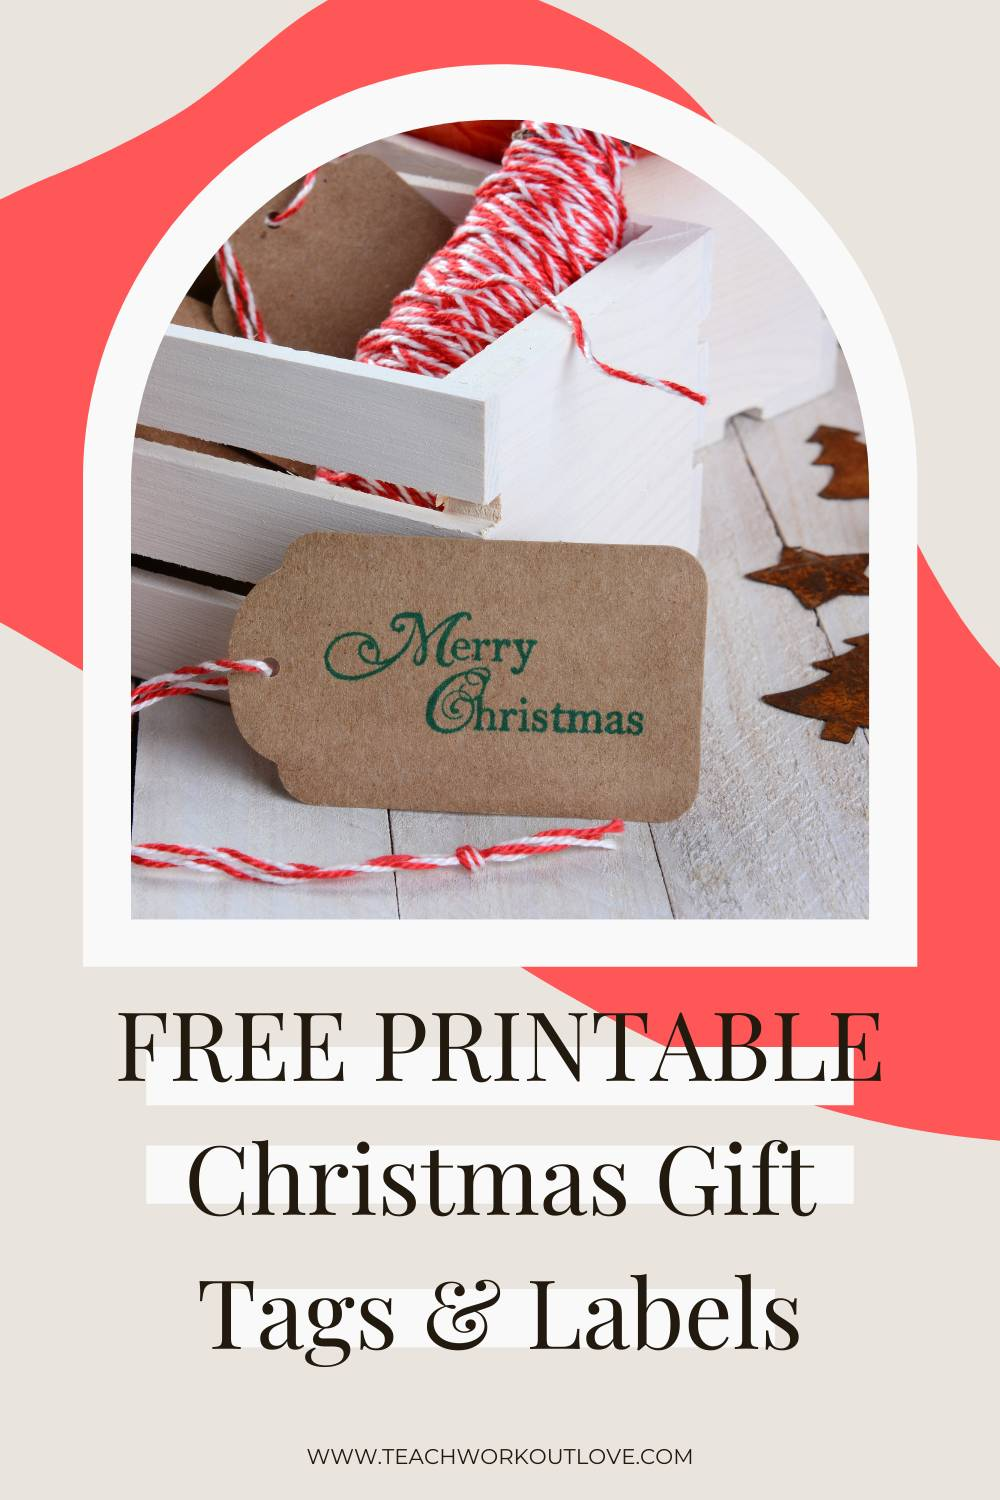 Find out some of the best yet free Christmas gift tags at Teach.Workout.Love! Click to download the free gift tags and print them.